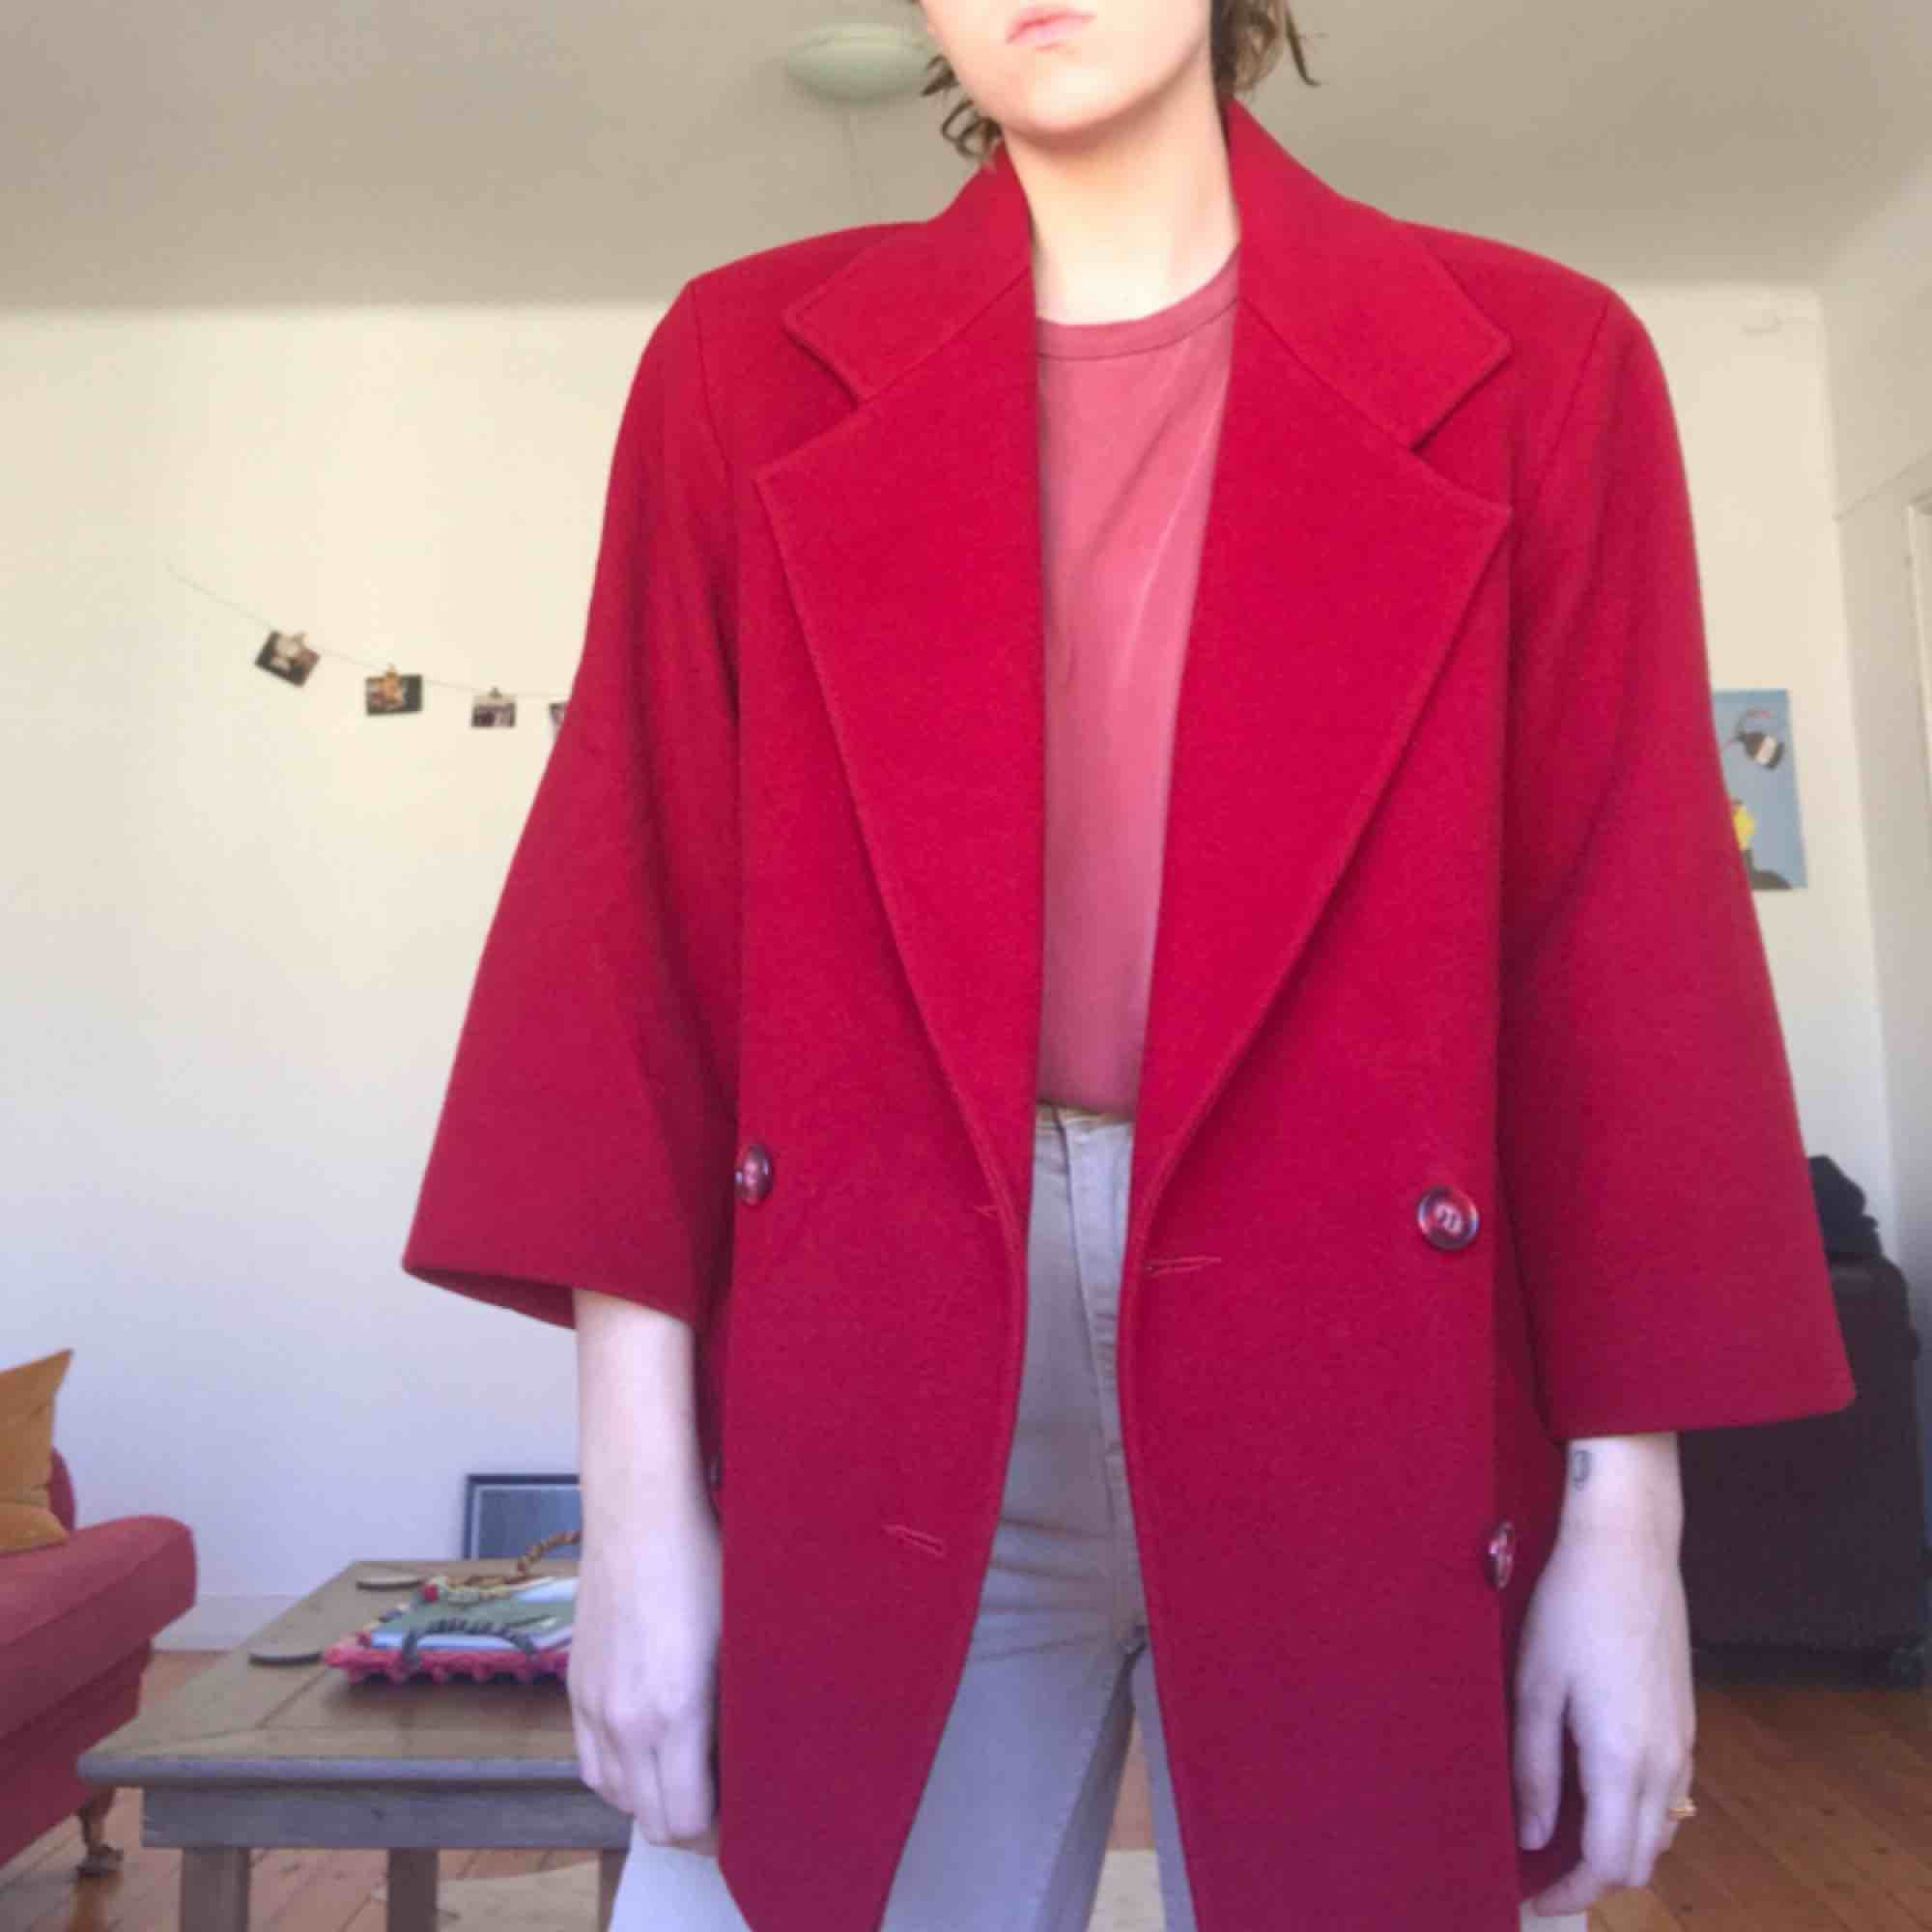 perfect condition! beautiful red and buttons so unique, marble red. bought at a vintage store and have only worn once! plus SICK SHOULDER PADS!. Jackor.